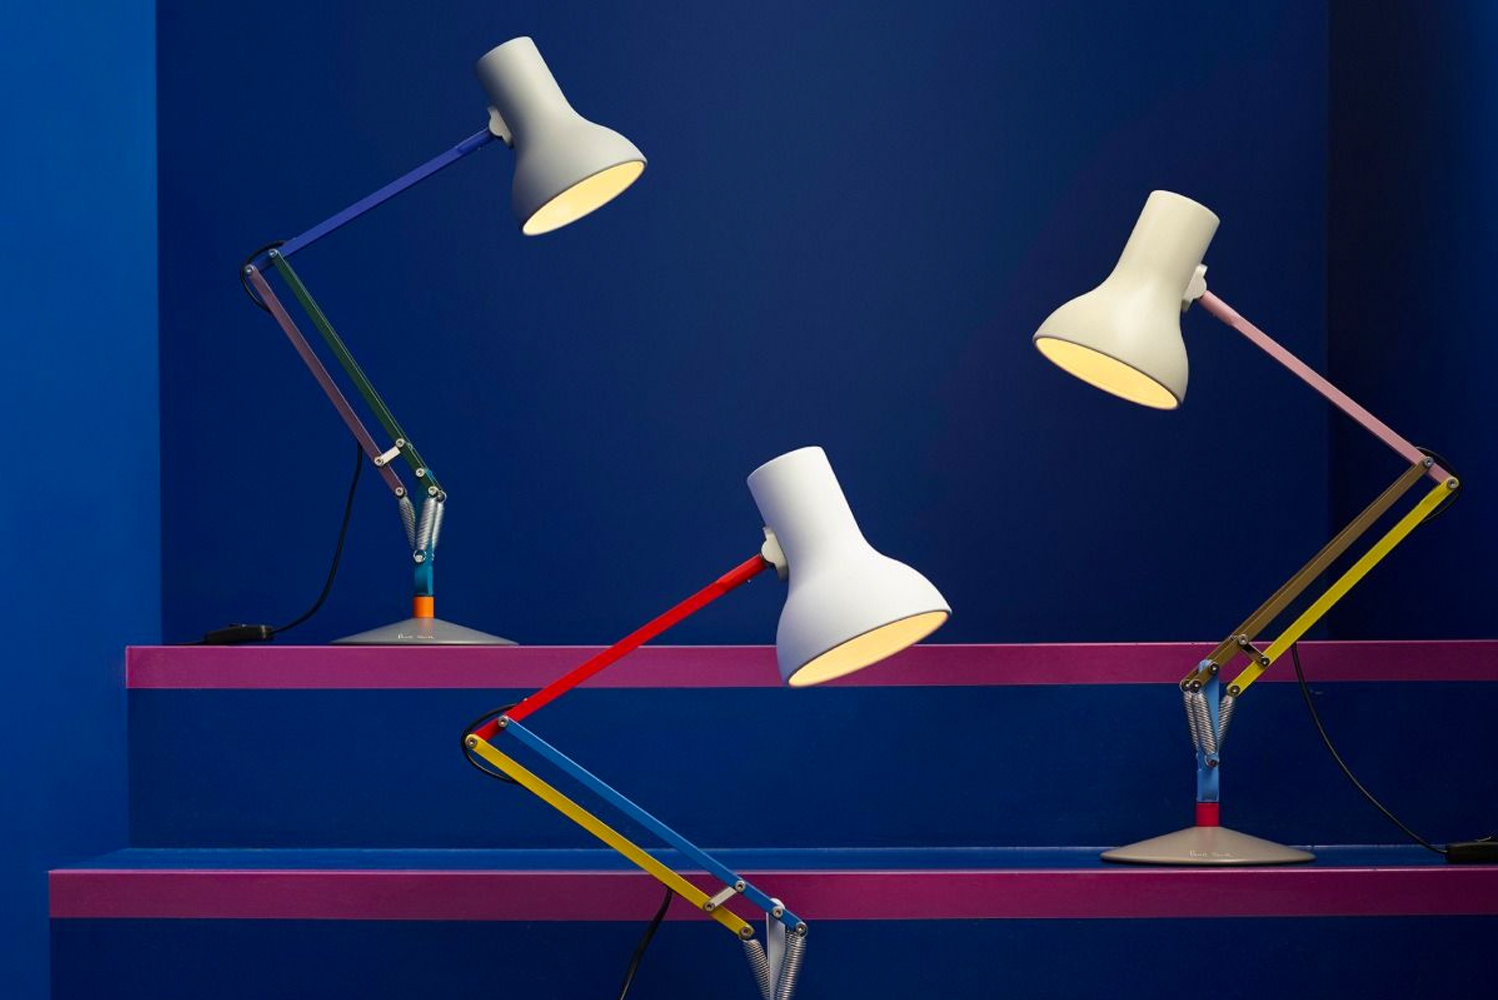 The Type 75 mini and Type 75 desk lamp are available in the three Paul Smith and Anglepoise Edition colors.